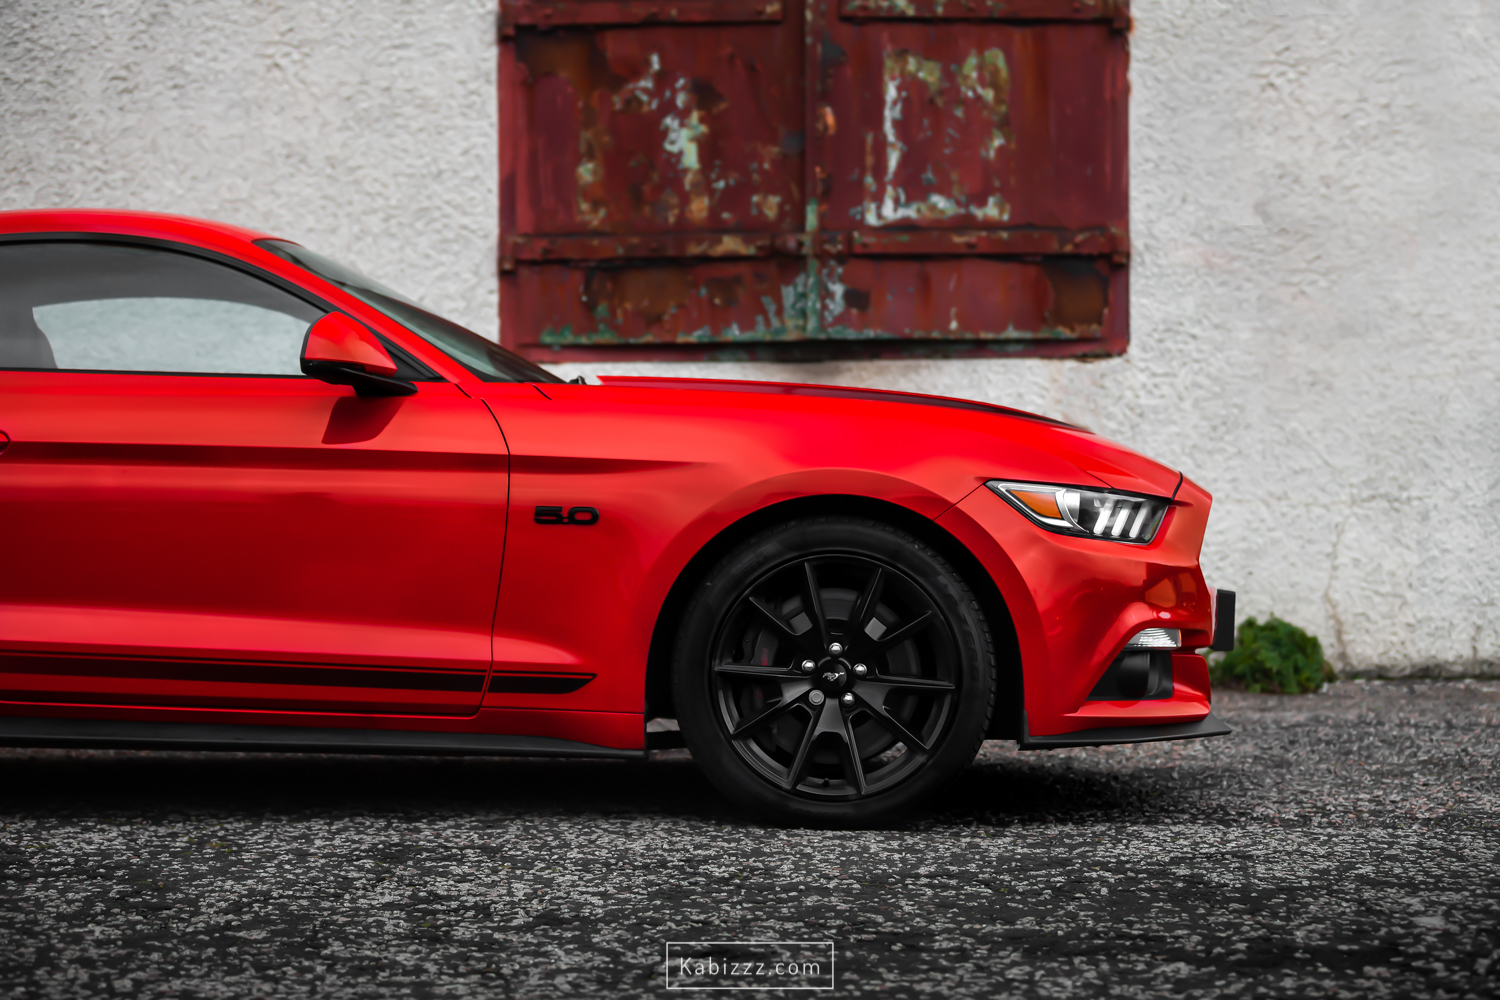 2018_ford_mustang_red_scotland_photography_automotive_photography_kabizzz-4.jpg